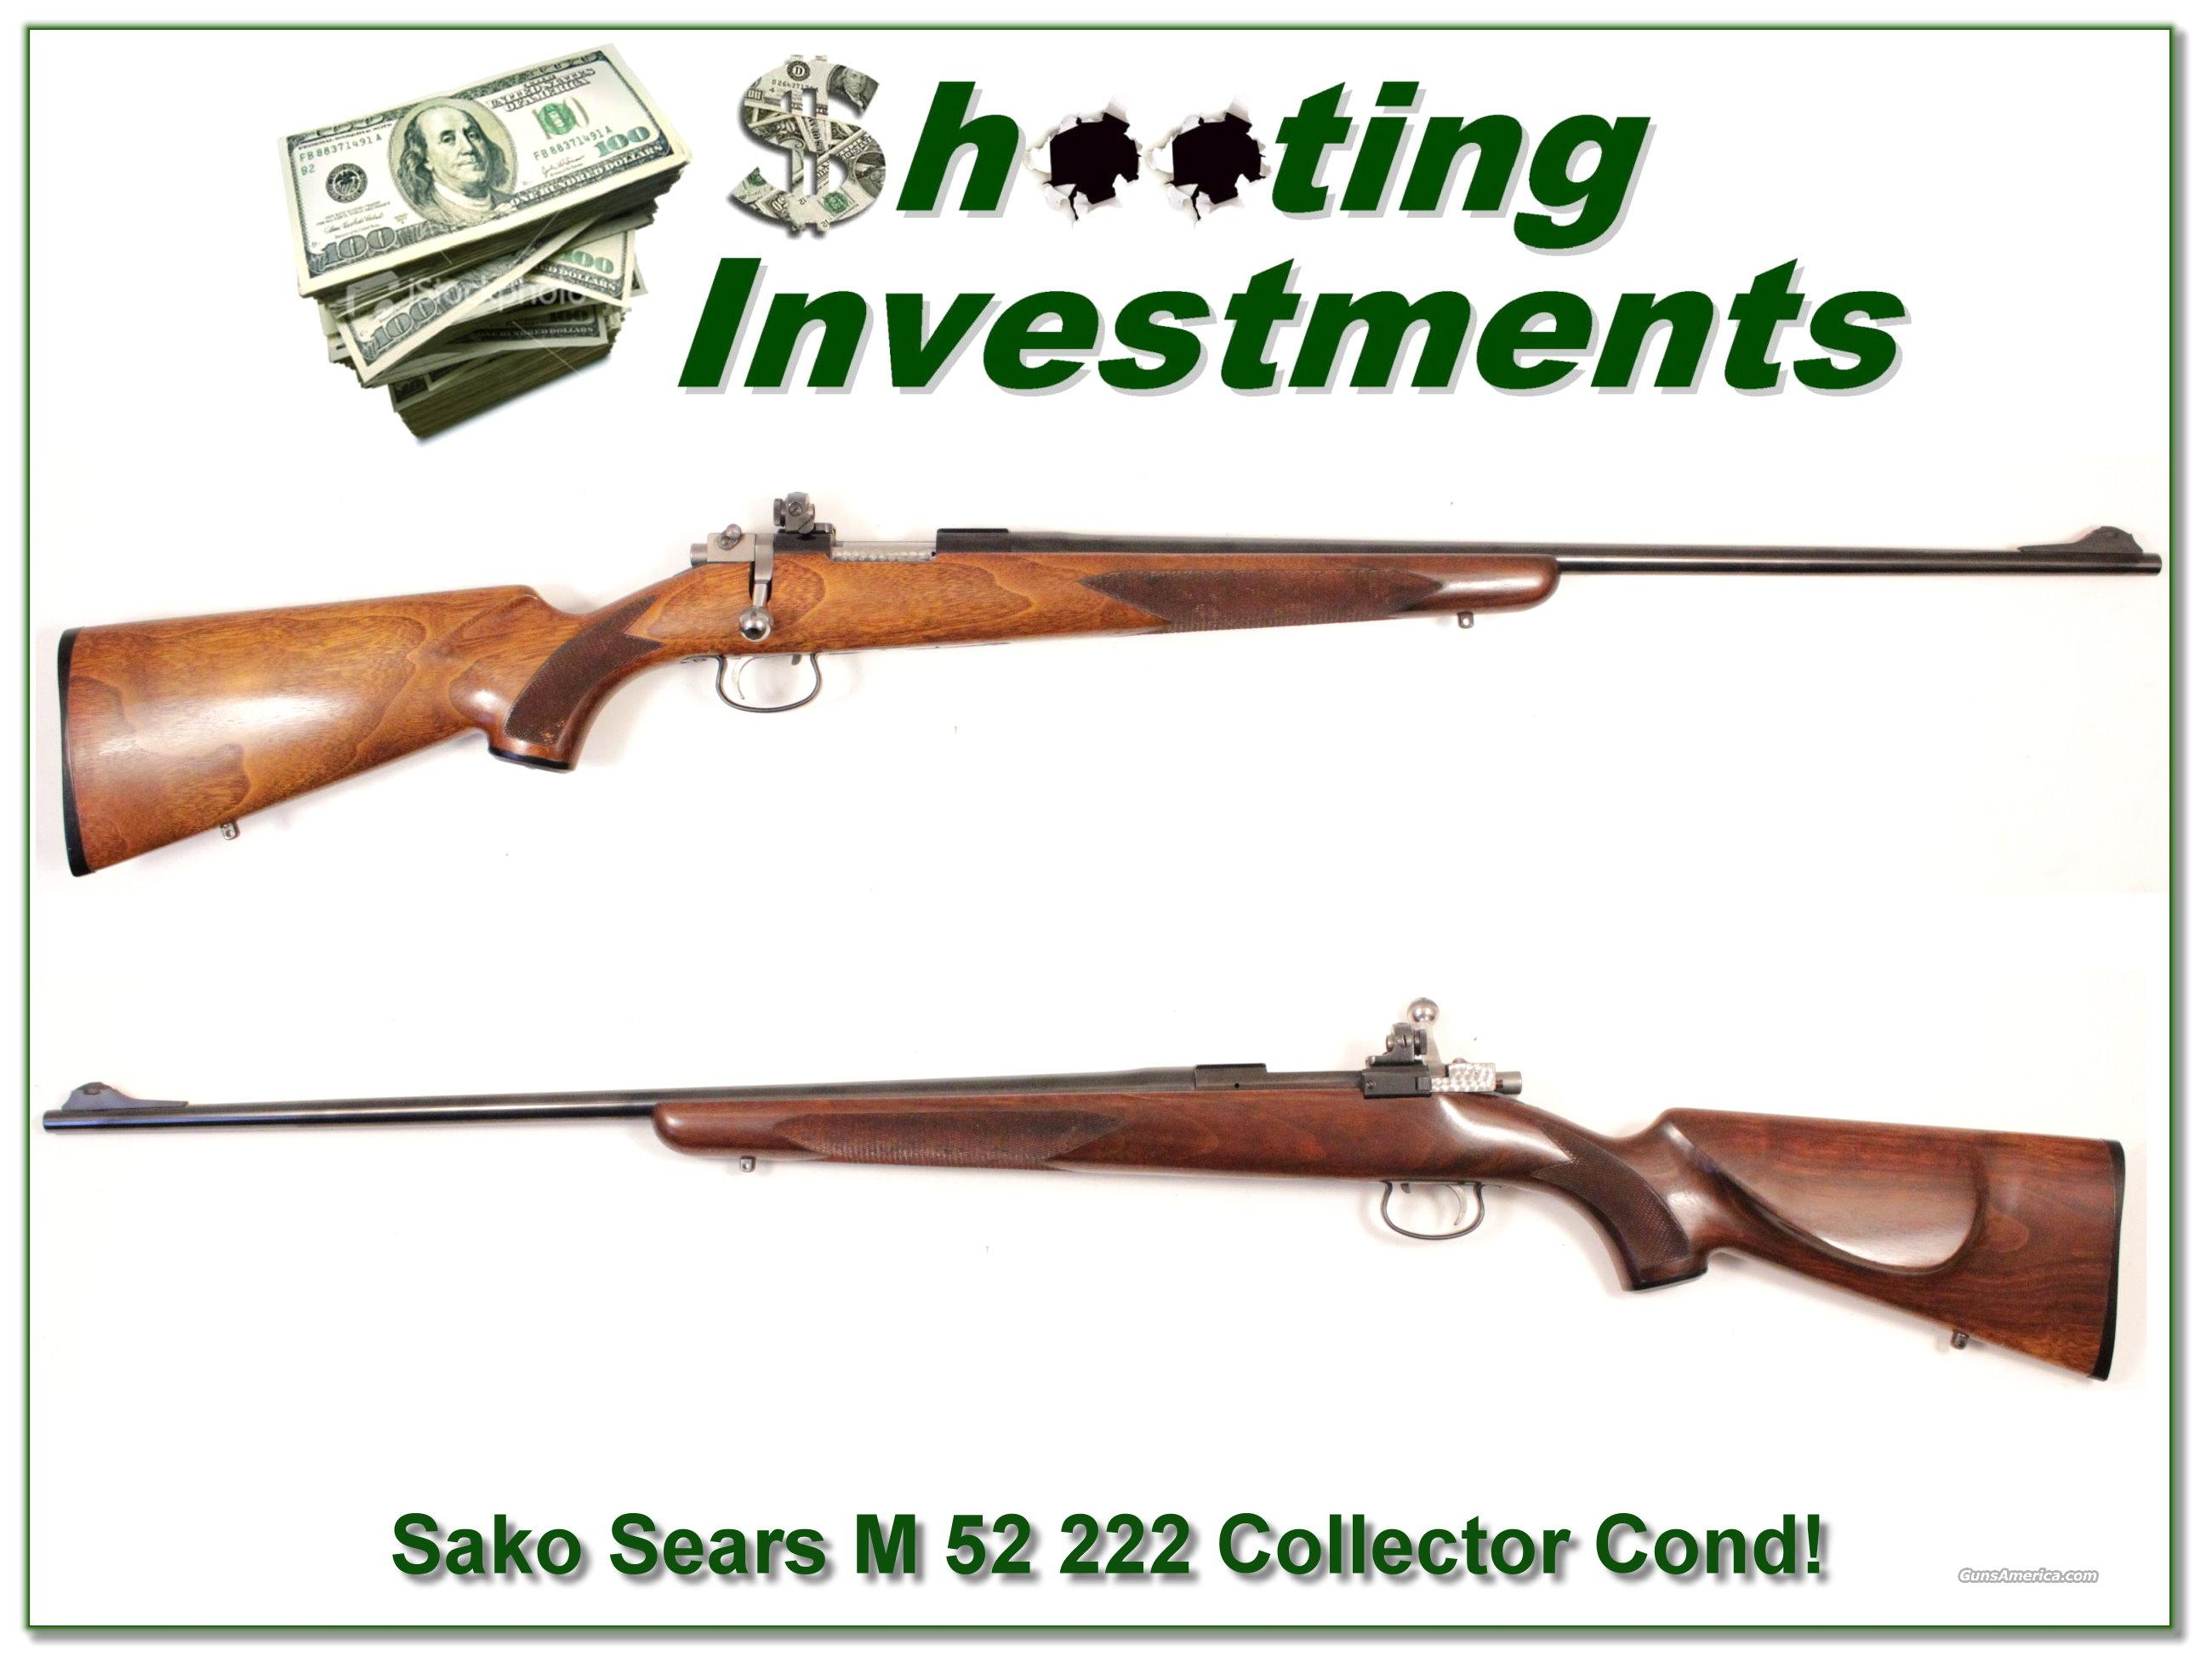 Sako Riihimaki Sears JC Higgins Model 52 222 Rem 28in near new!  Guns > Rifles > Sako Rifles > Other Bolt Action